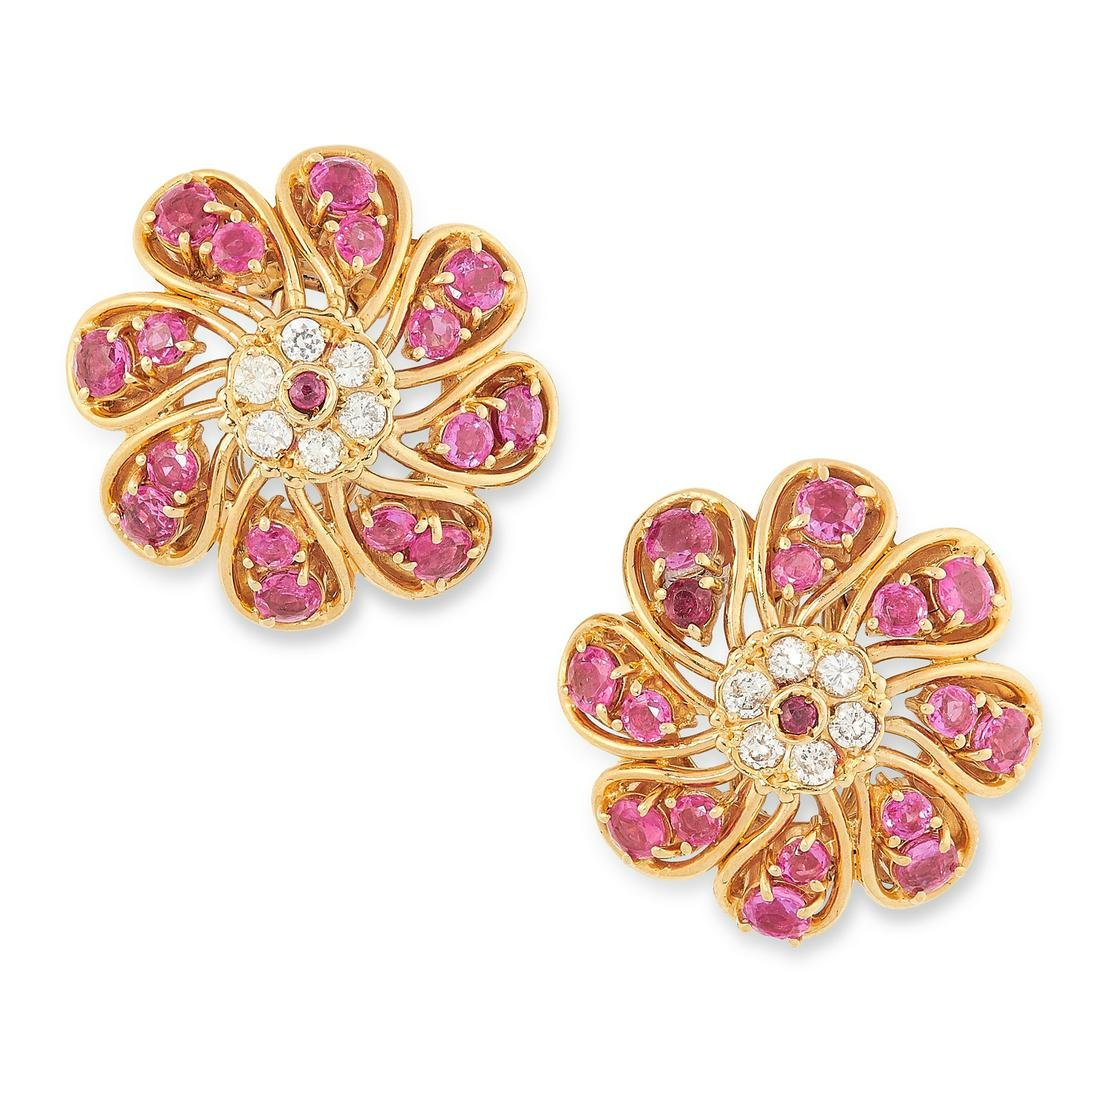 A PAIR OF VINTAGE RUBY AND DIAMOND CLUSTER EARRINGS